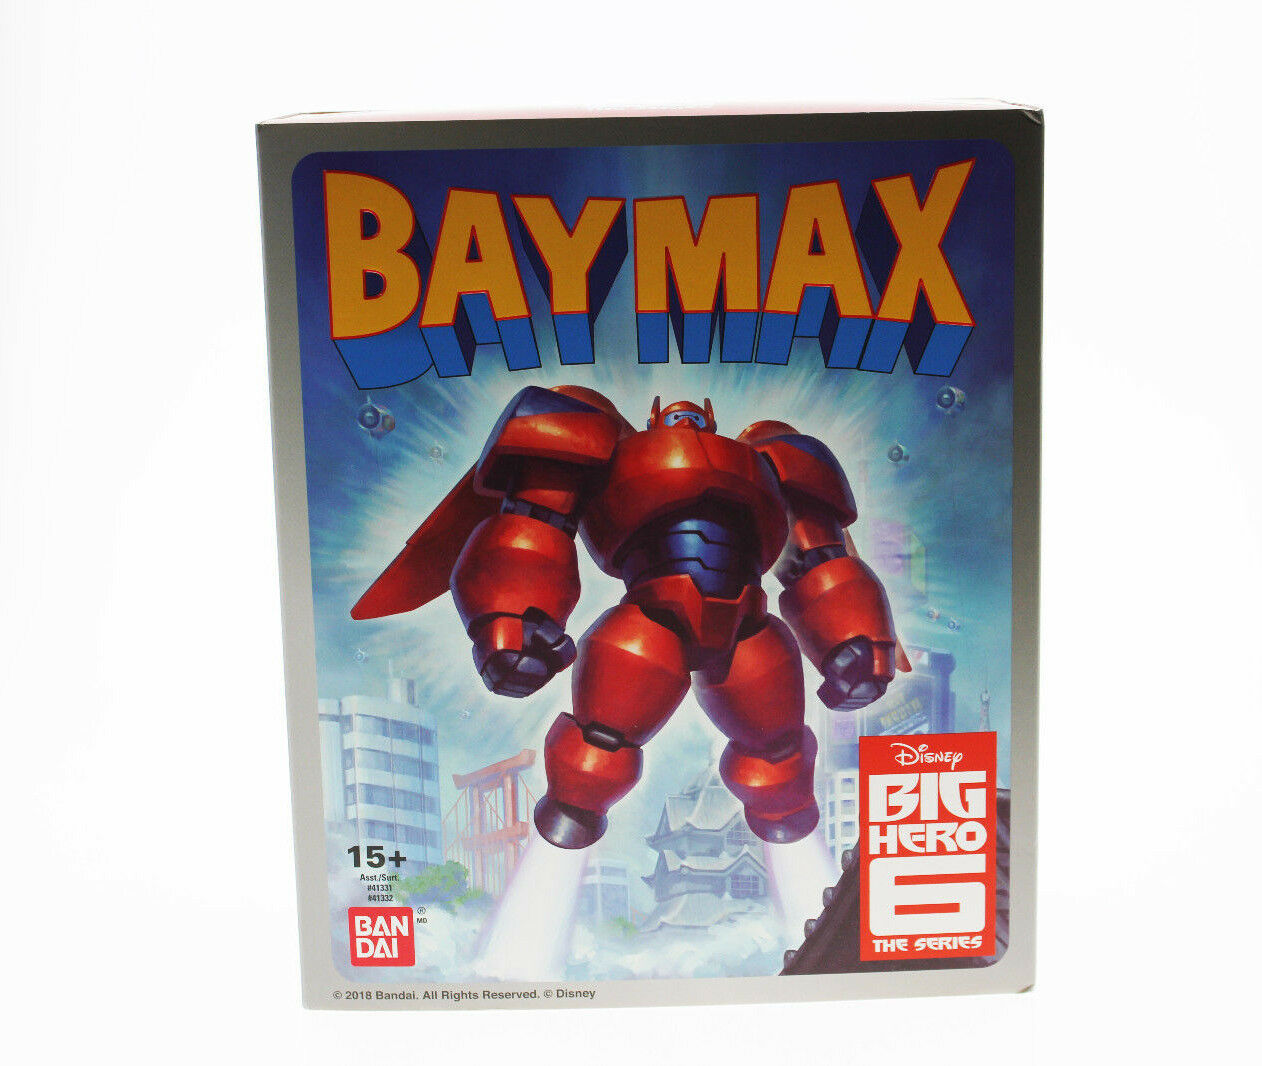 Comic Con SDCC 2018 Exclusive Bandai Die Cast Armored Baymax figure - IN HAND